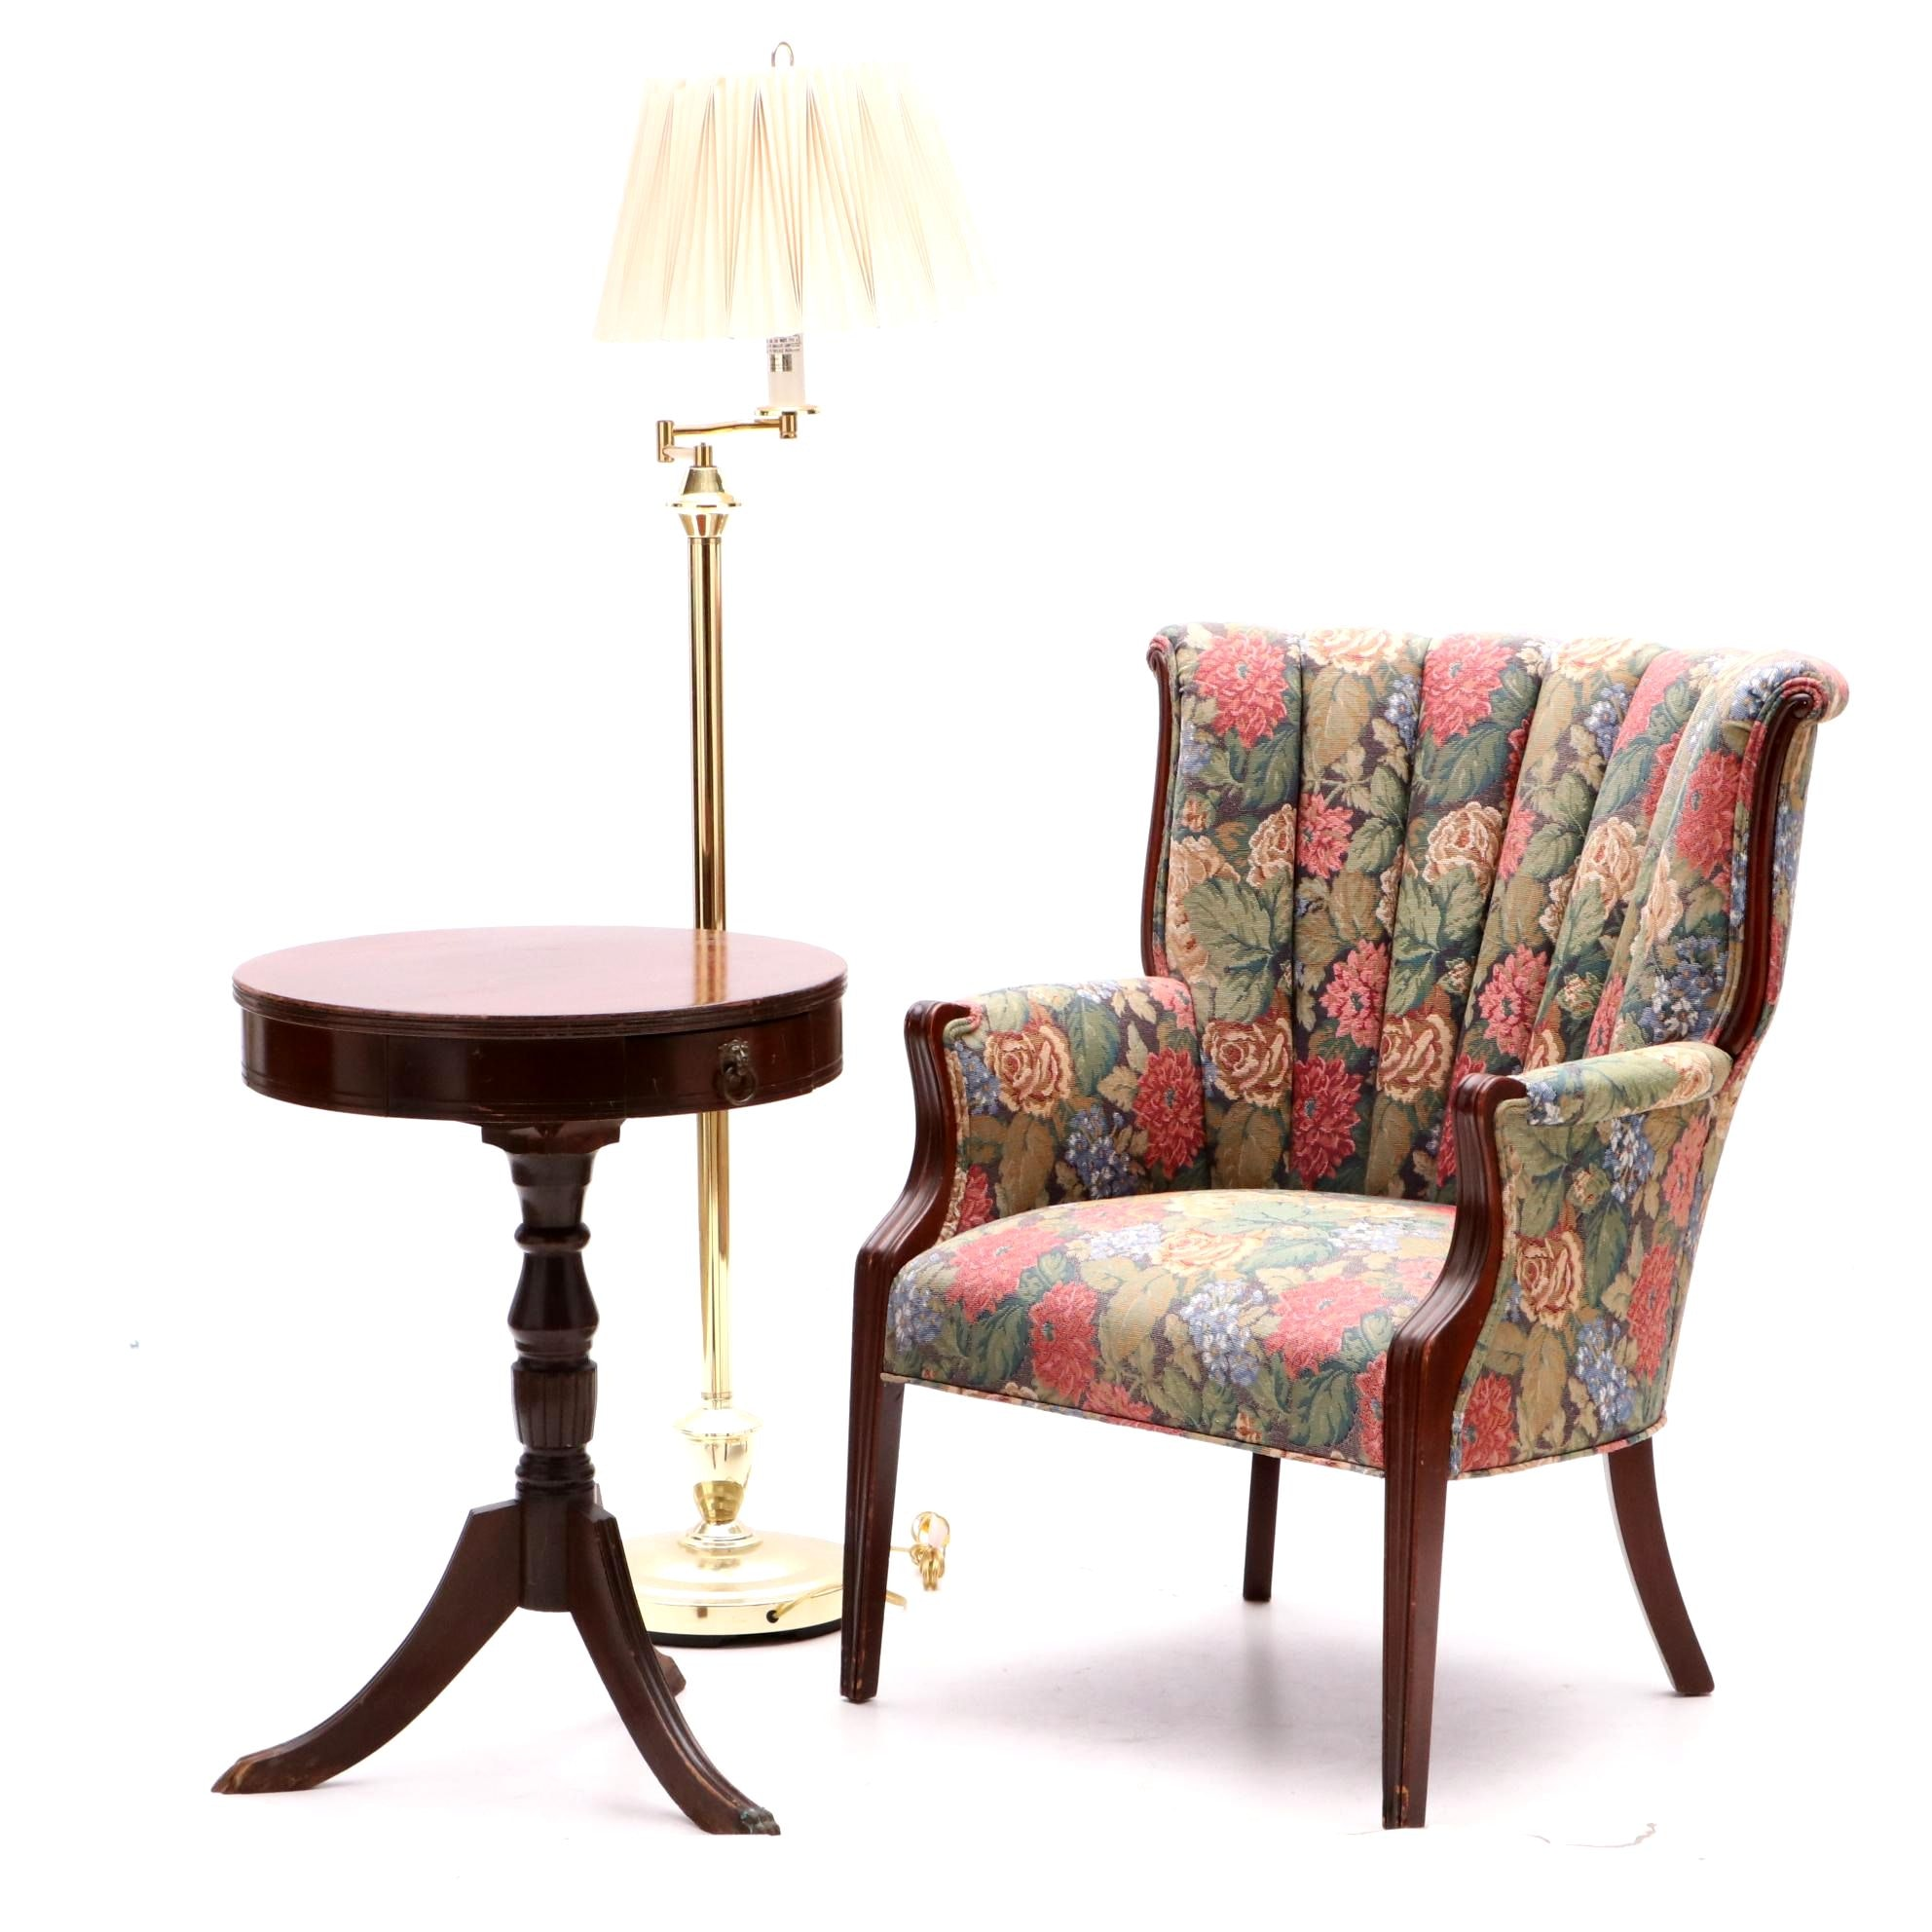 Upholstered Floral Arm Chair, Accent Table and Floor Lamp